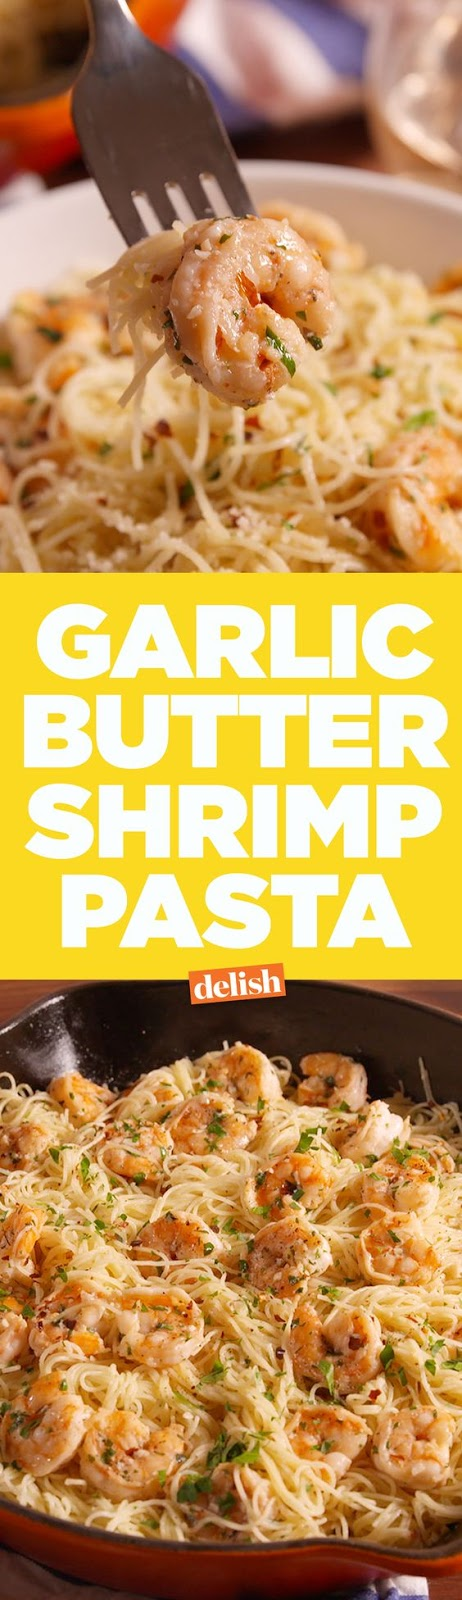 Impress your friends with this super easy recipe for garlic butter shrimp angel hair from Delish.com.